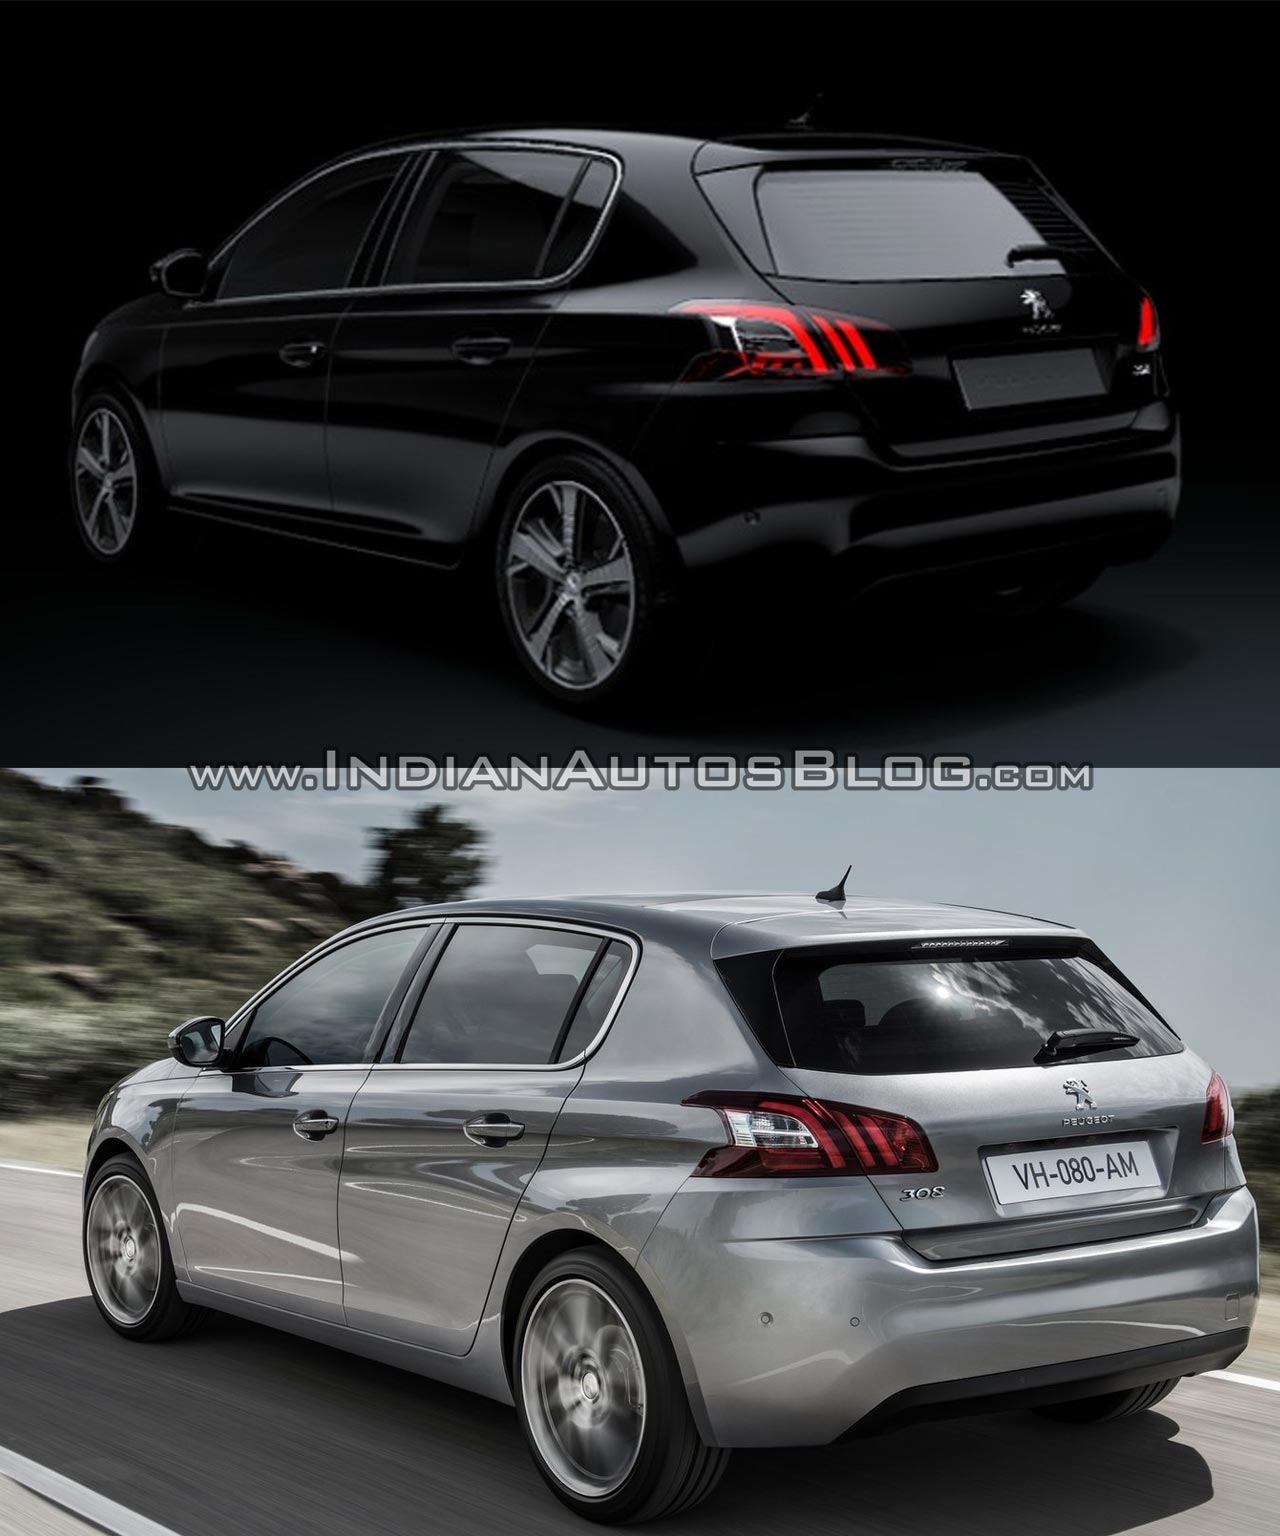 2017 Peugeot 308 vs. 2013 Peugeot 308 rear three quarters